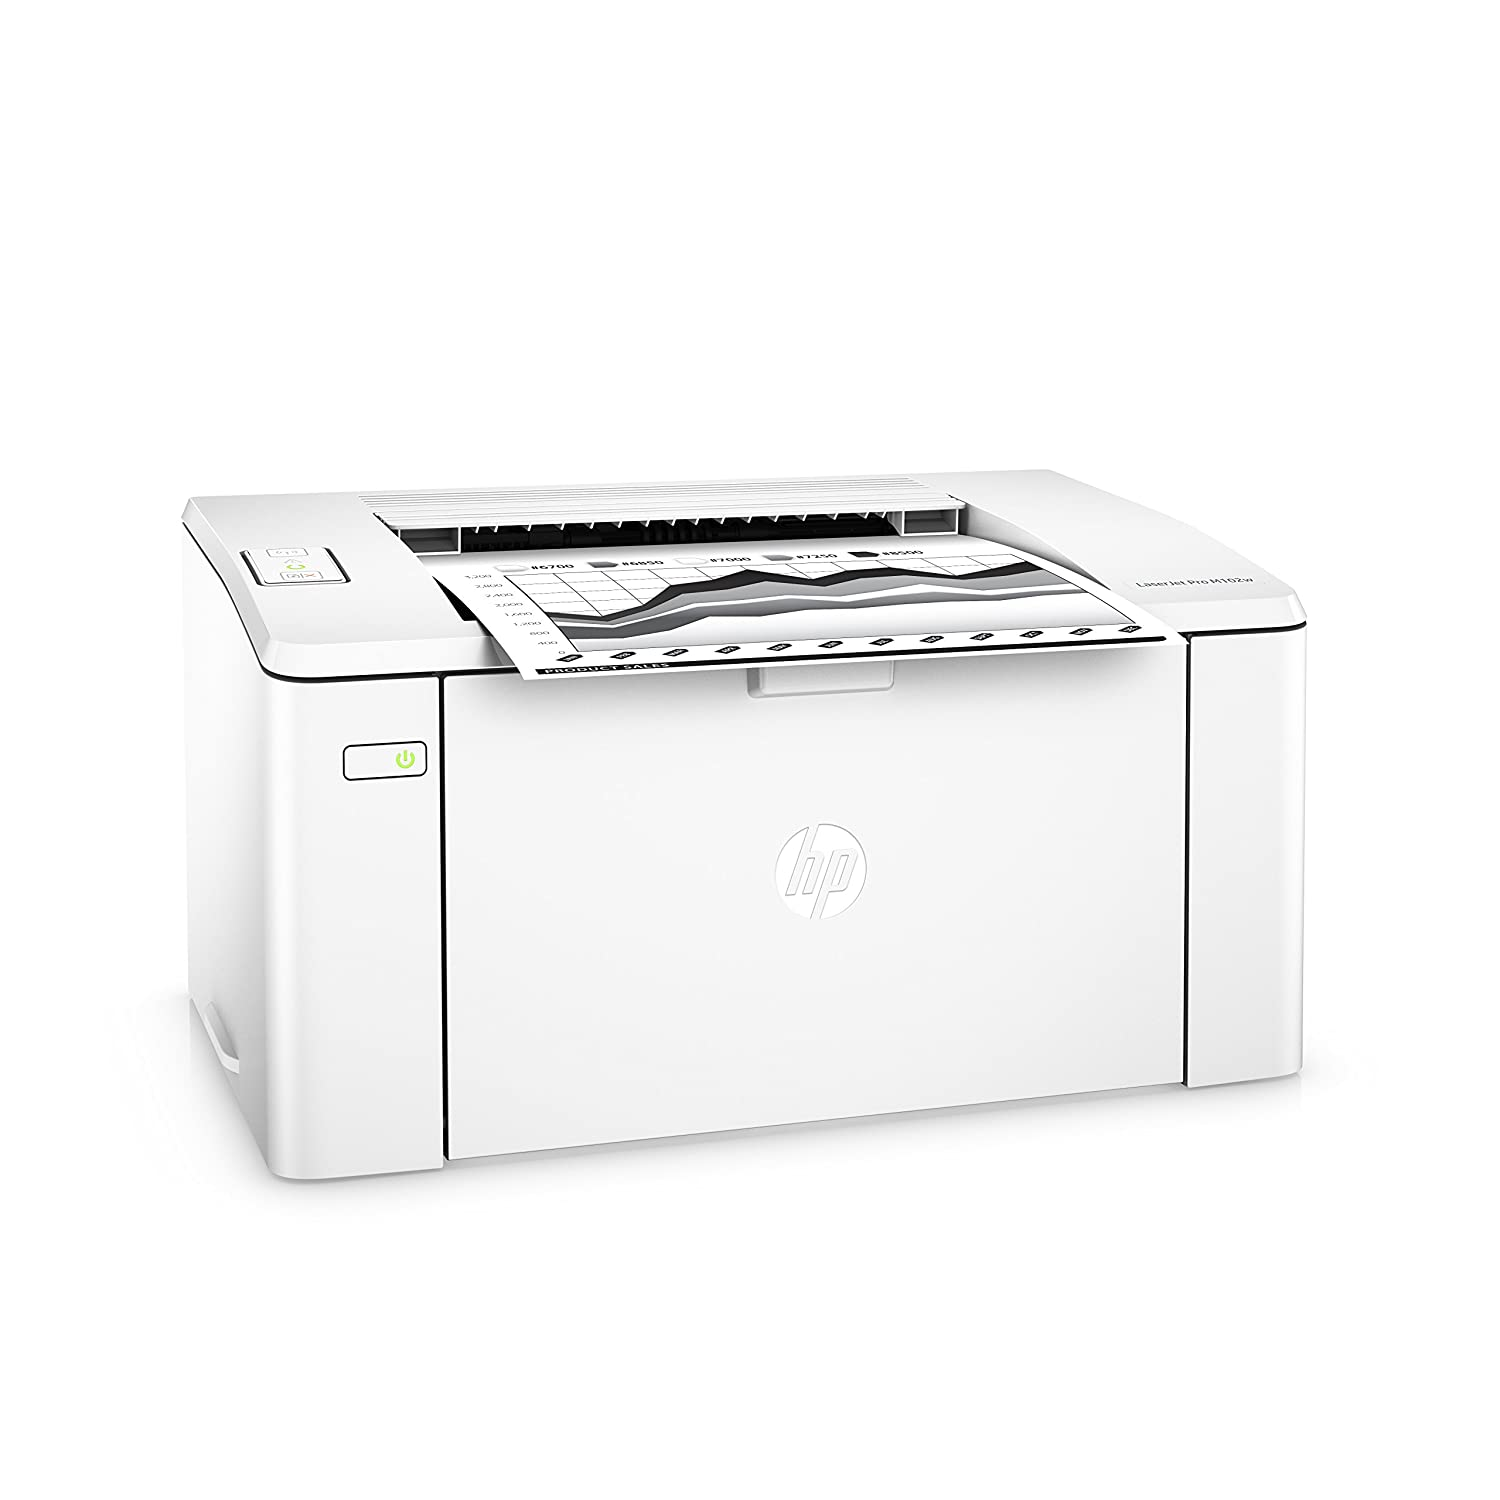 HP LaserJet Pro M102w Wireless Laser Printer, Amazon Dash Replenishment ready (G3Q35A). Replaces HP P1102 Laser Printer